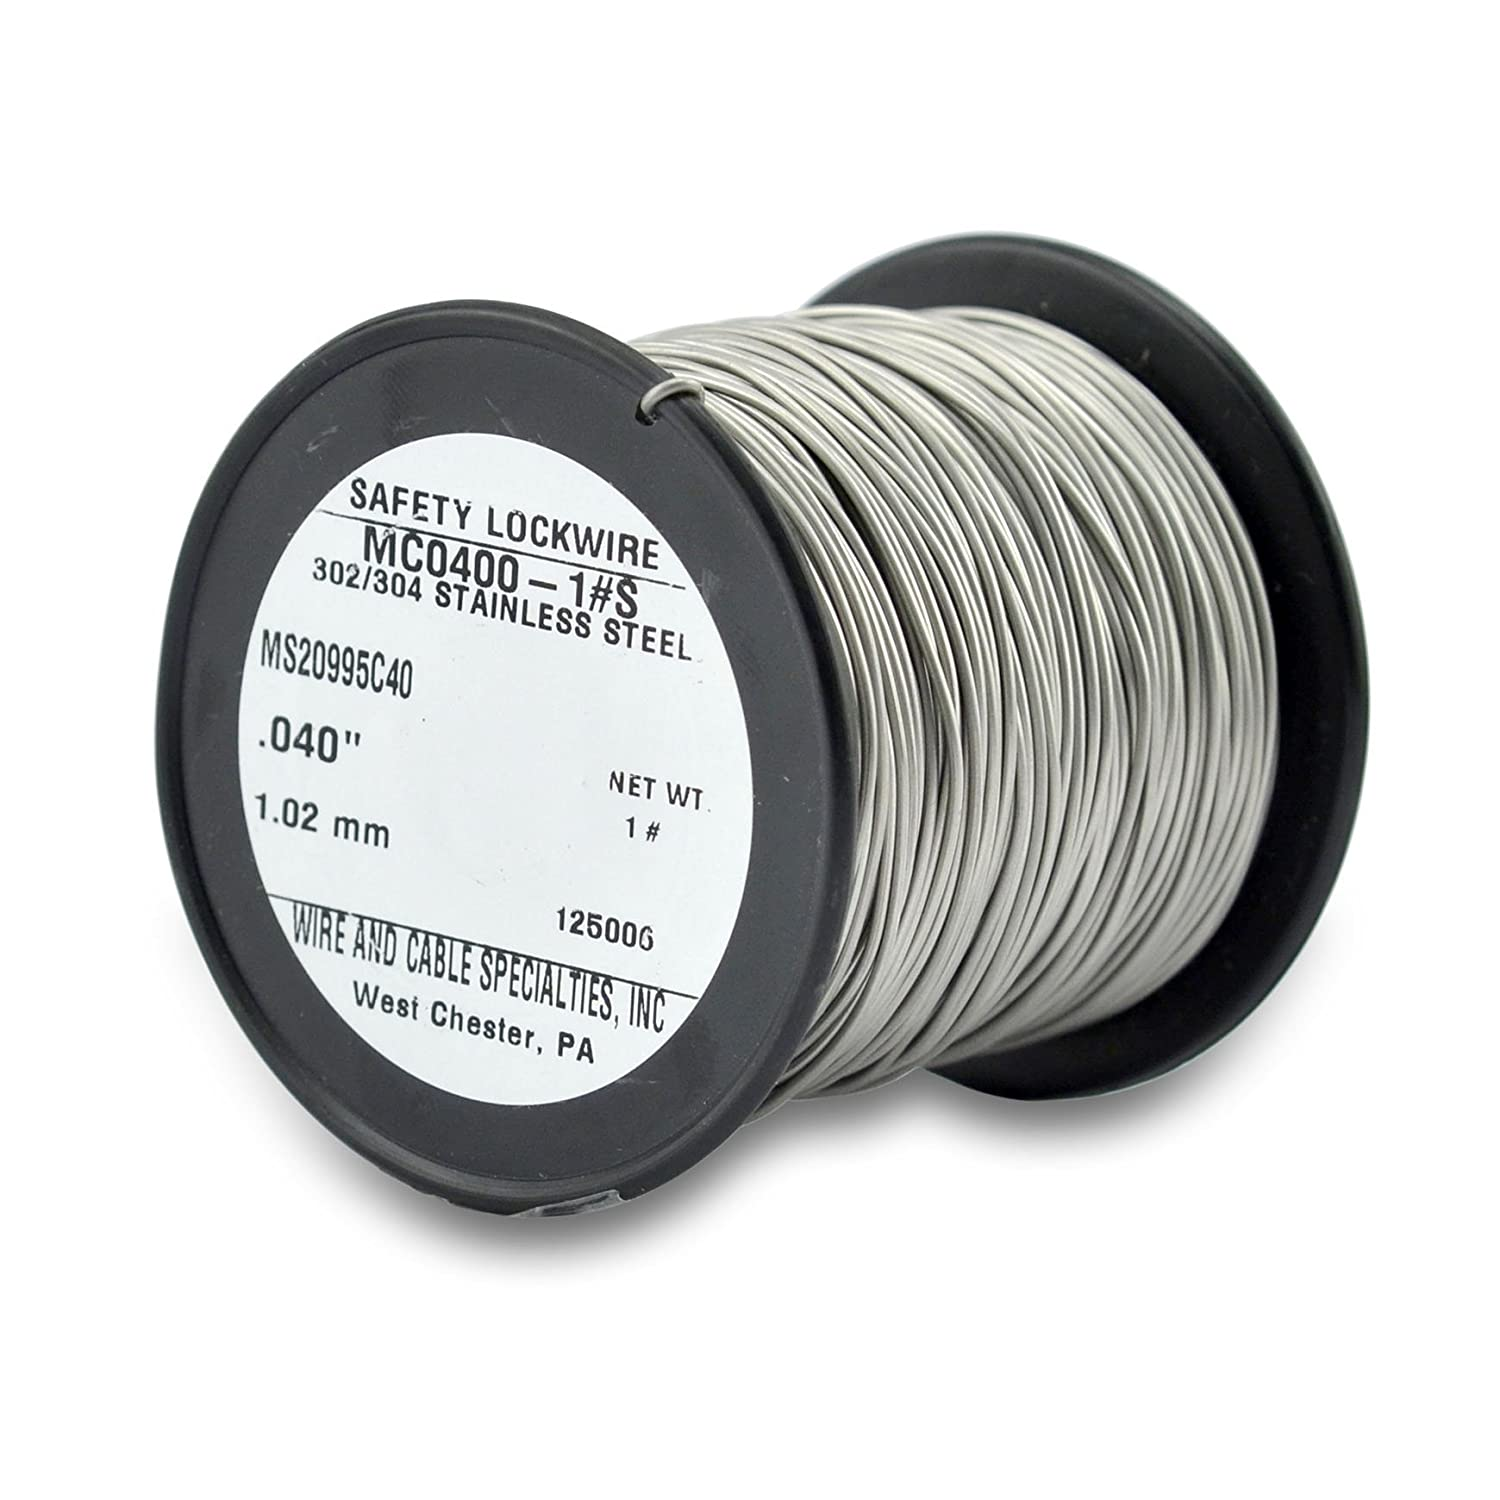 0.45 kg appx 231 ft 1.04 mm Spool Wire and Cable Specialties MC0400-1#S Safety Lockwire MS20995C40 .040 in 1 lb 32 m